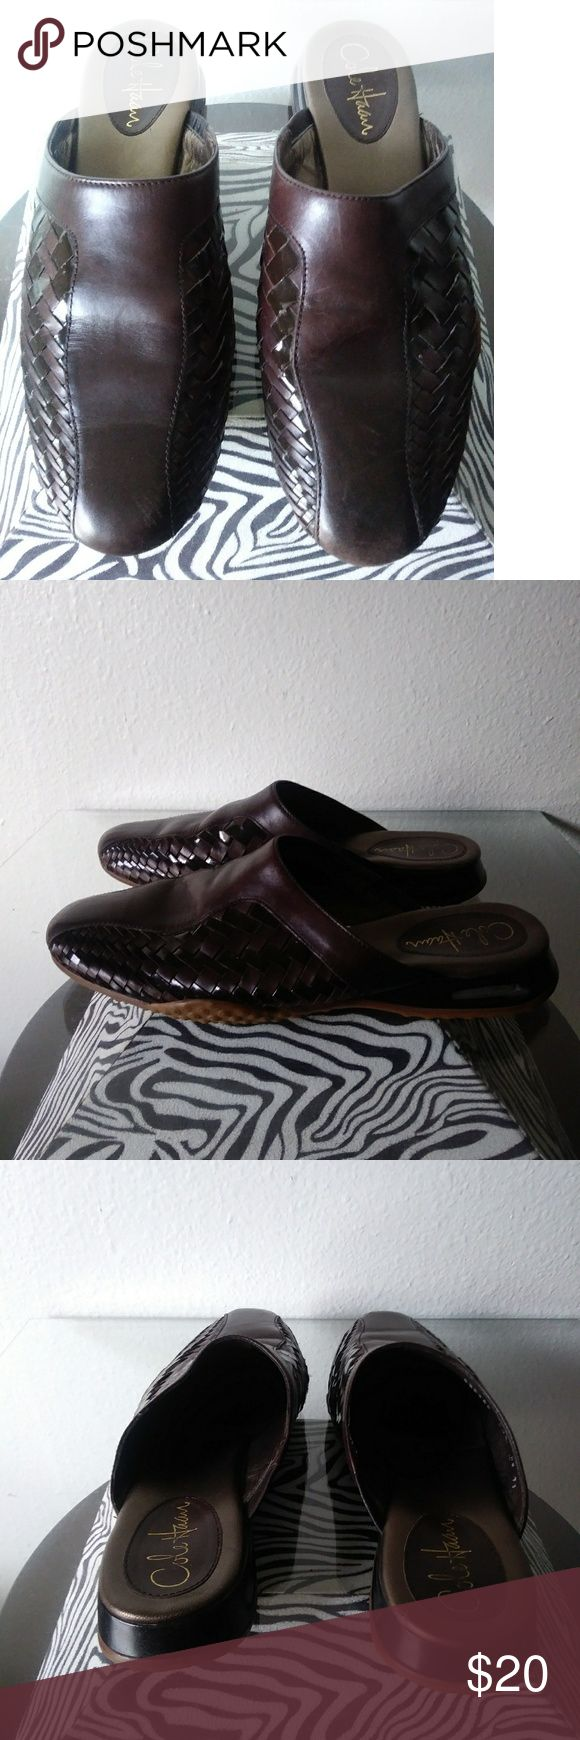 "COLE HAAN basketweave mules Size 8.5, brown leather and rubber sole w/ ""Nike Air"" stamped on bottom; VERY comfortable and virtually new, no wear! Price is flexible, or bundle 4 discount! Cole Haan Shoes Mules & Clogs"